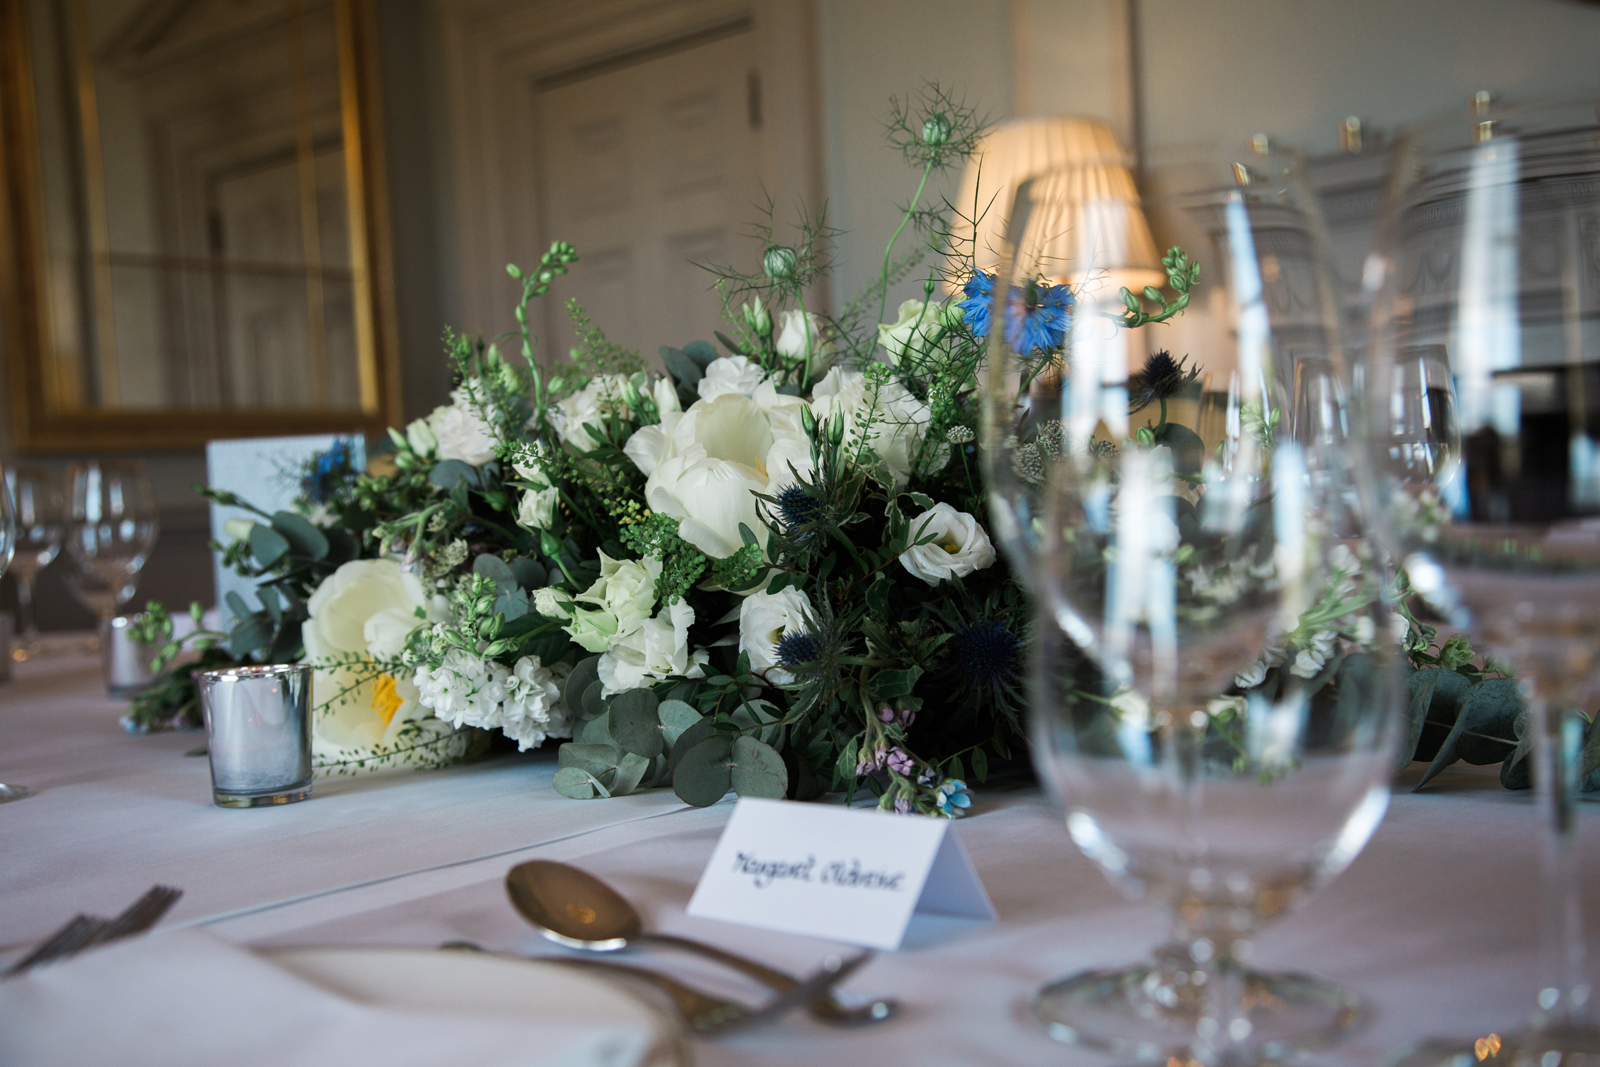 Cliveden House - Wedding Table Setting